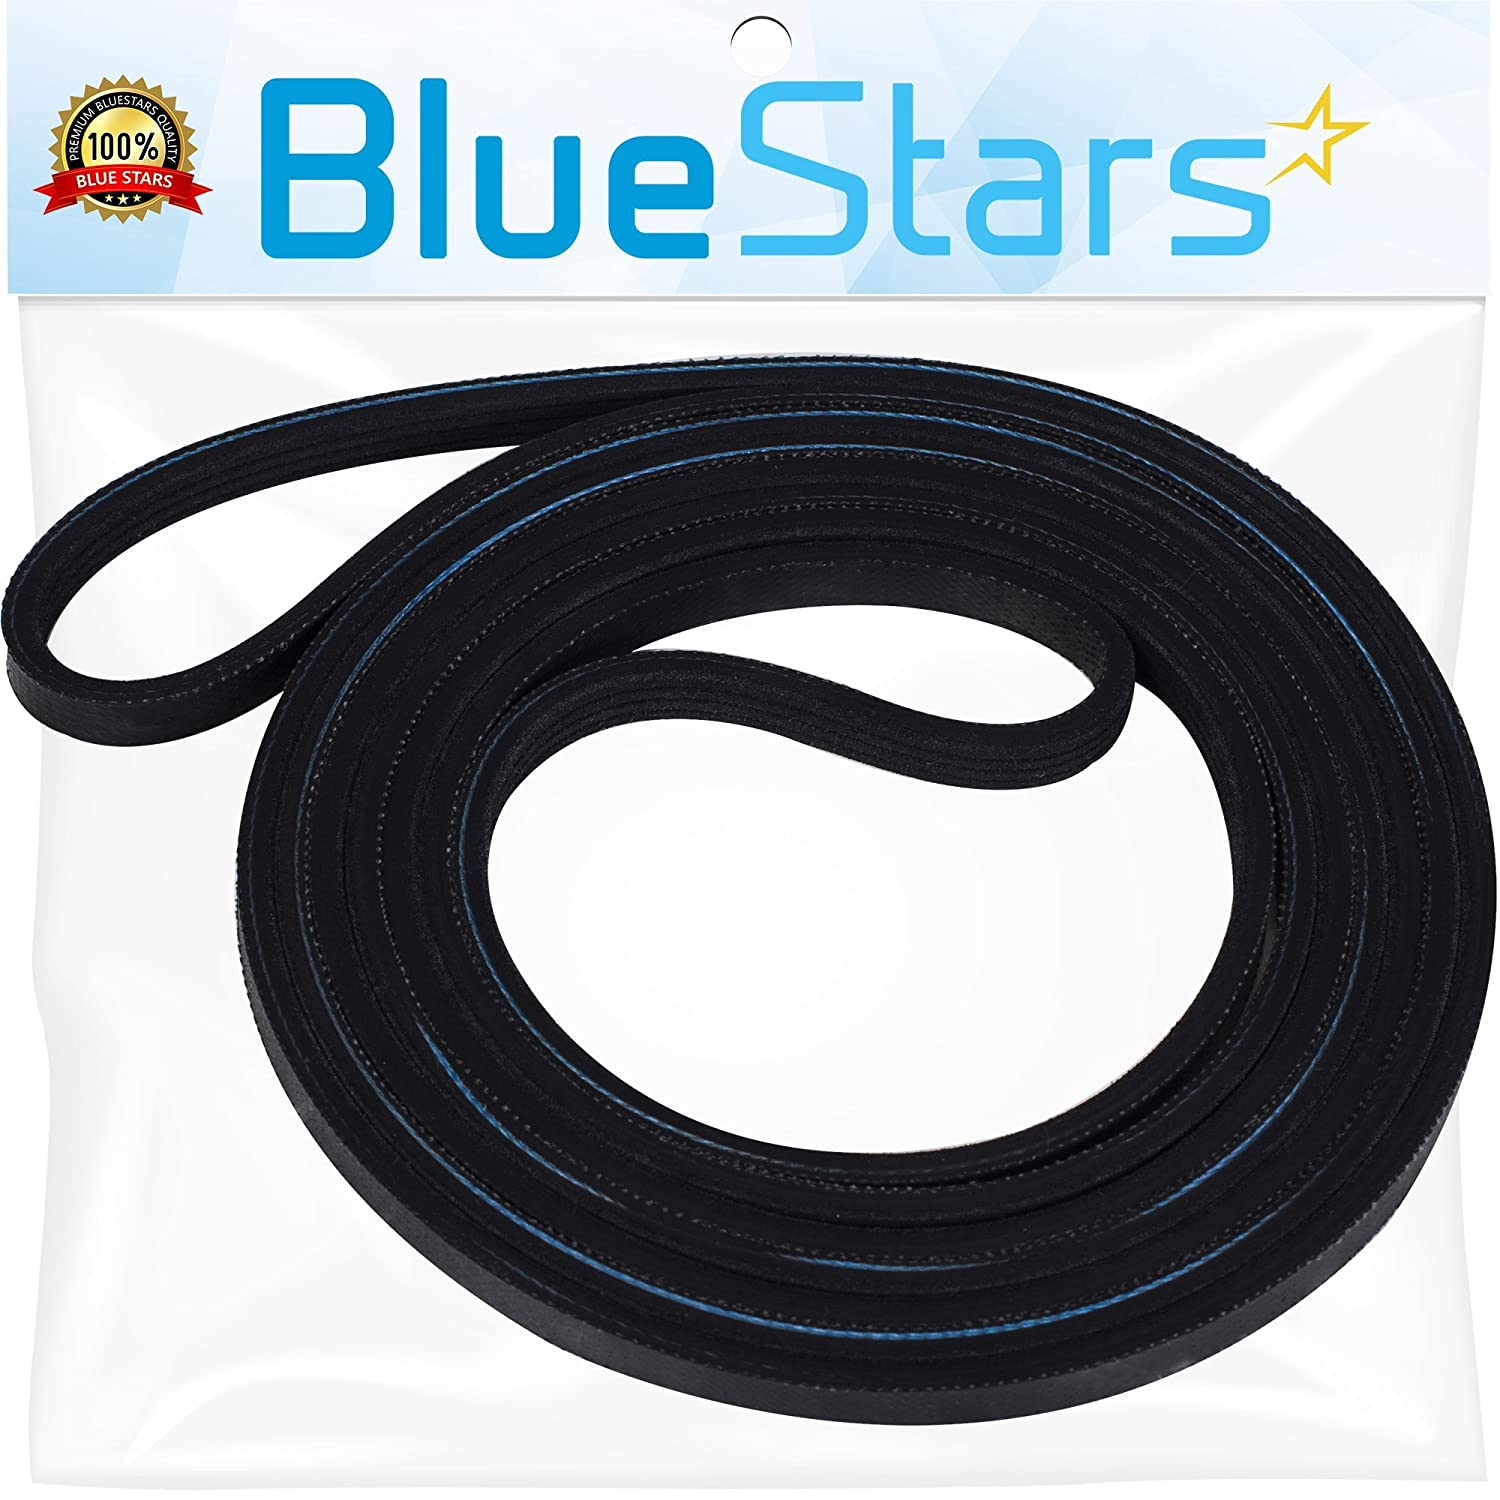 Ultra Durable 137292700 Dryer Drum Belt Replacement Part by Blue Stars- Exact Fit for Frigidaire Electrolux Dryer- Replaces WE12M29 134163500 134503900 1615170